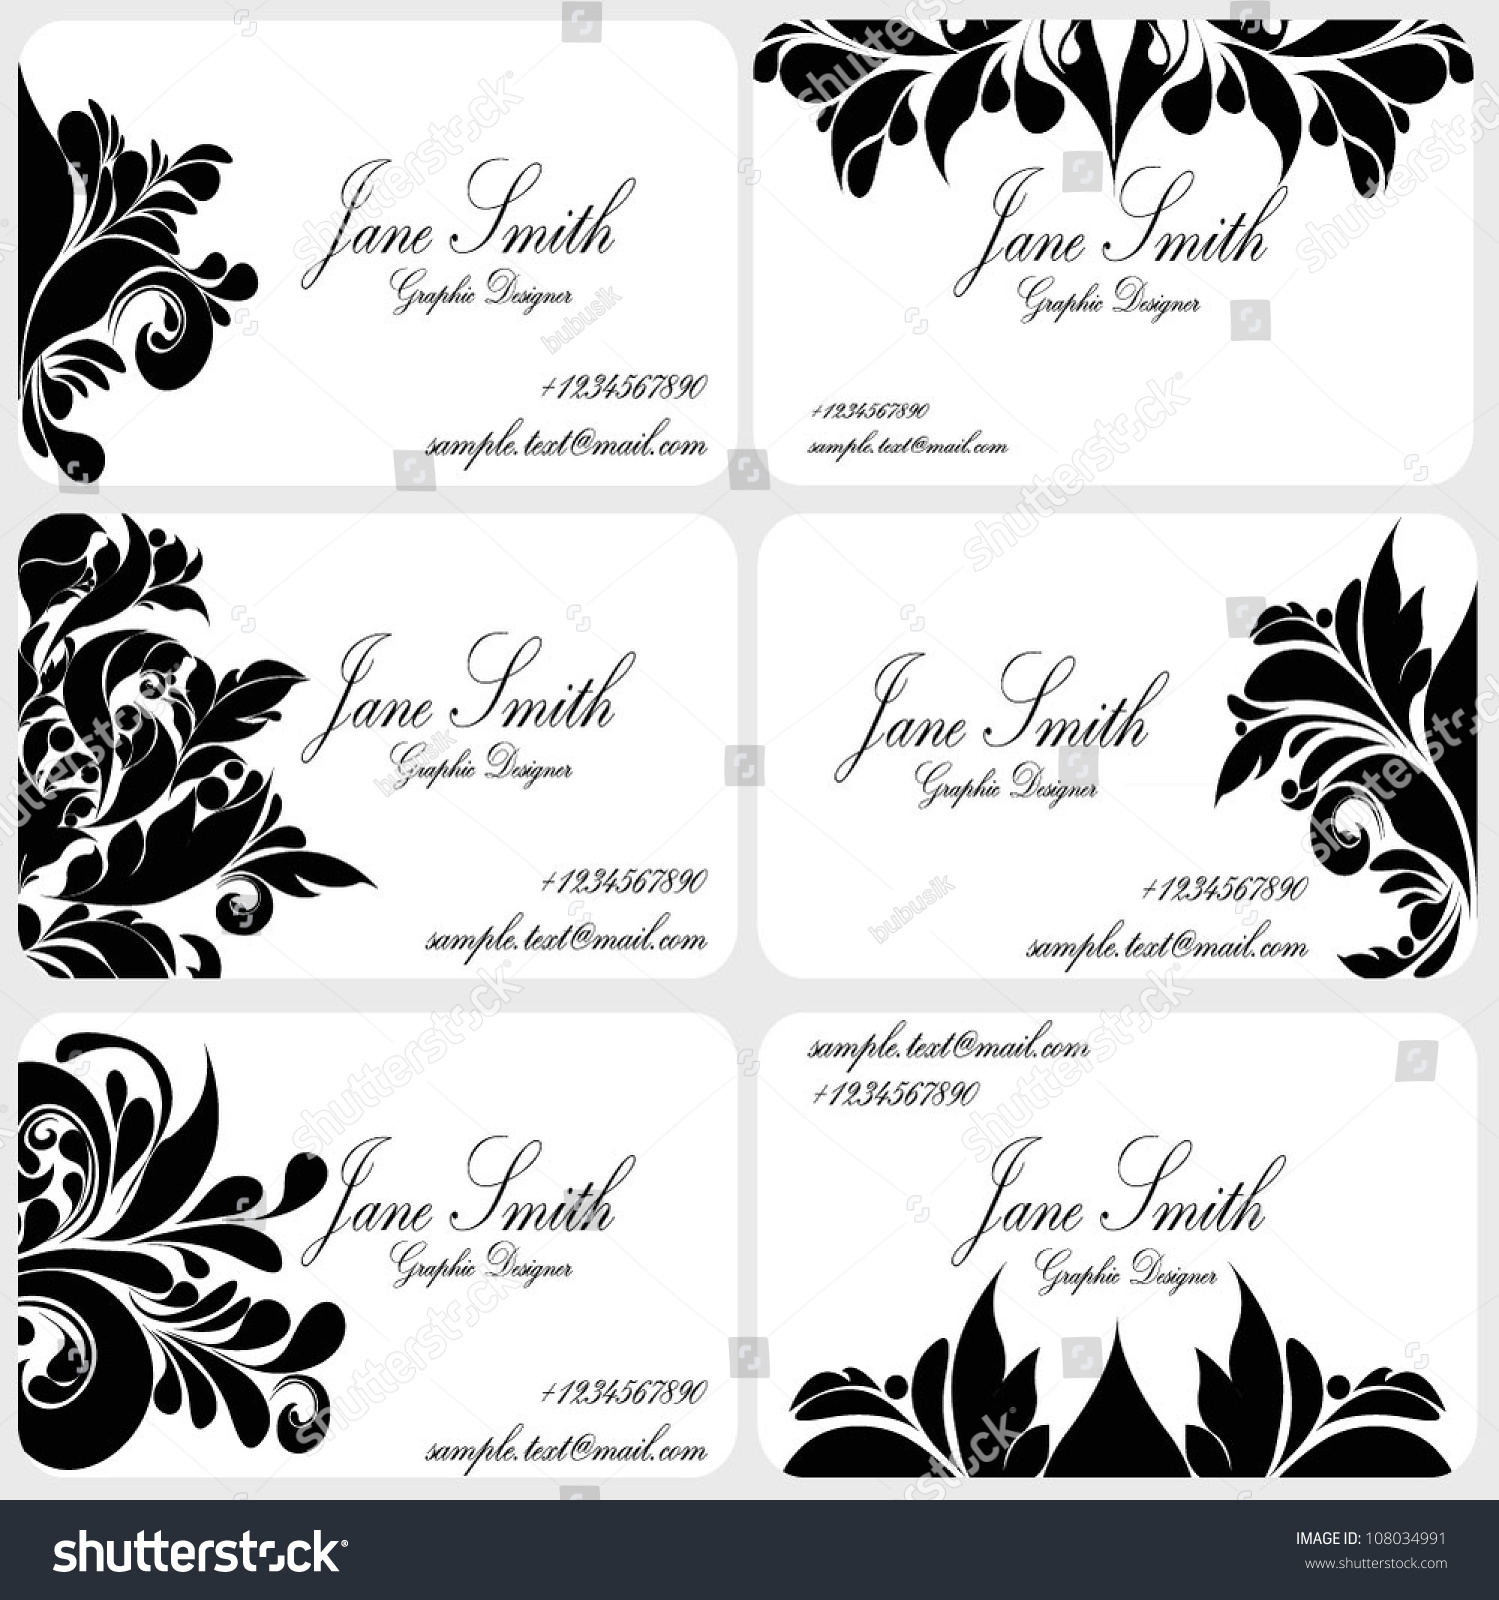 Damask Business Card Set Victorian Business Stock Vector 108034991 ...